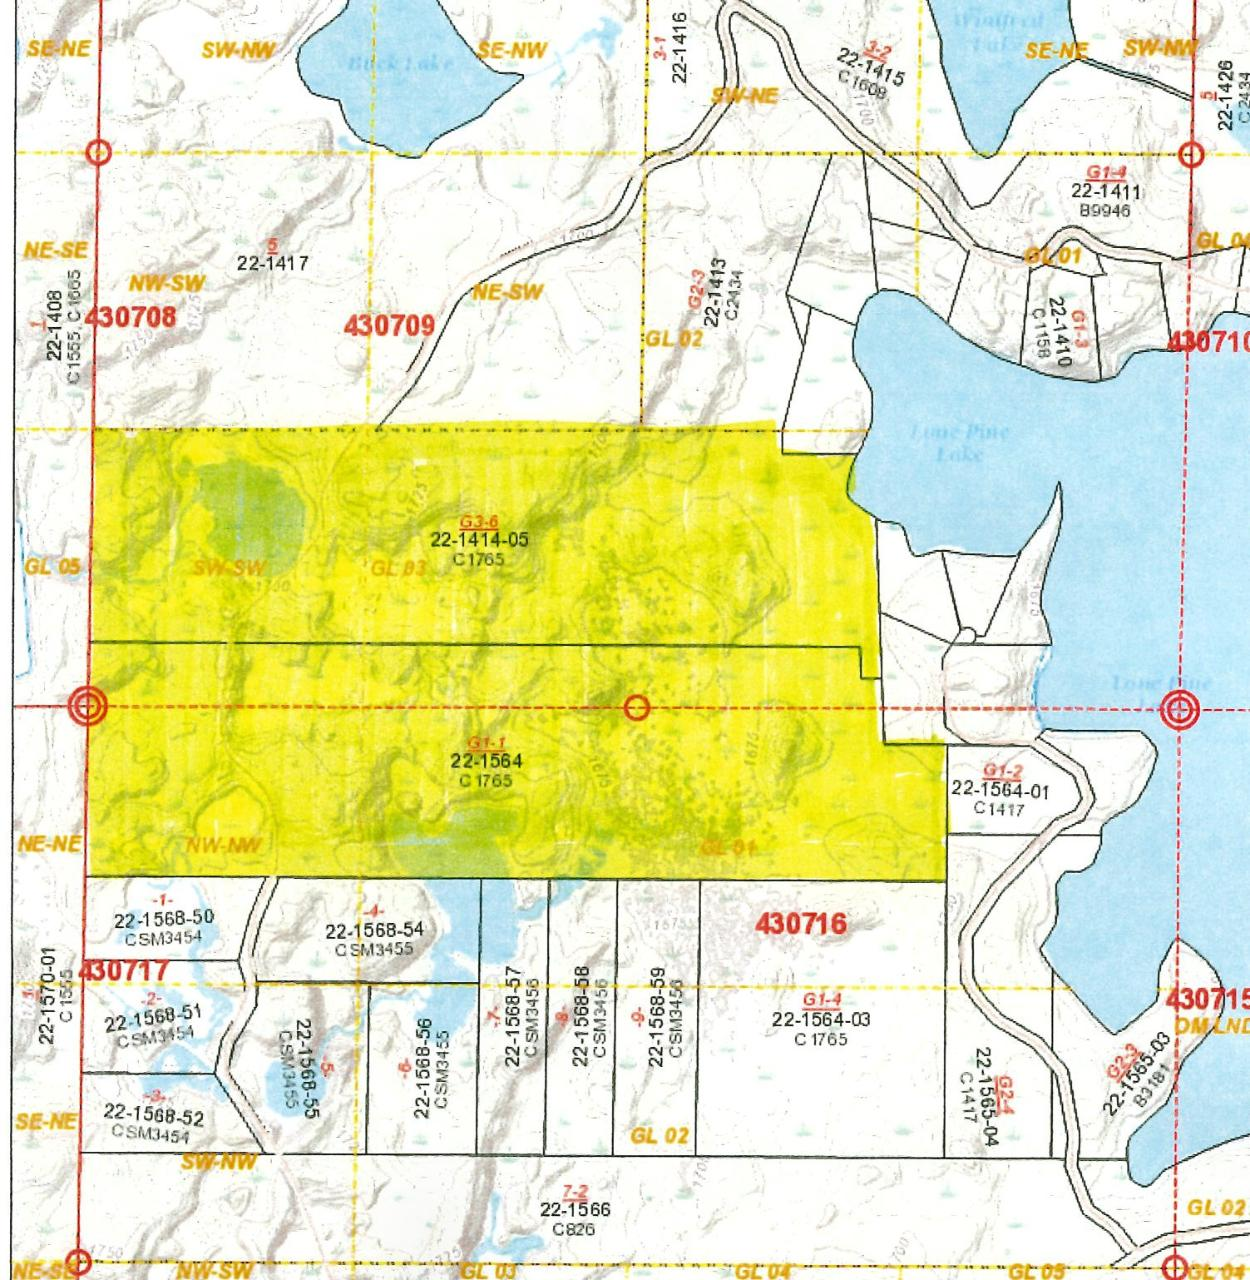 Presque Isle Sports Paradise - 190 acres of managed forest lands numerous food plots for wildlife multiple elevated deer stands, ponds and flowages for waterfowl, covered road for ruffed grouse. There is also 400' of frontage on Full Rec Lone Pine Lake, a fantastic managed fishery. The lake frontage is undeveloped but offers a spot for a pier. There are miles of traks and even a 24x40' pole barn to store your equipment and toys. The acreage also abuts the Catherine Wolter Border Lakes State Natural / Wilderness Area granting walking access to 1000's of acres of wild groves and private lakes. All types of wildlife abound on this rare tract. Private Road Access. Special assessments for road use. All measurements are approximate, Buyer to verify.